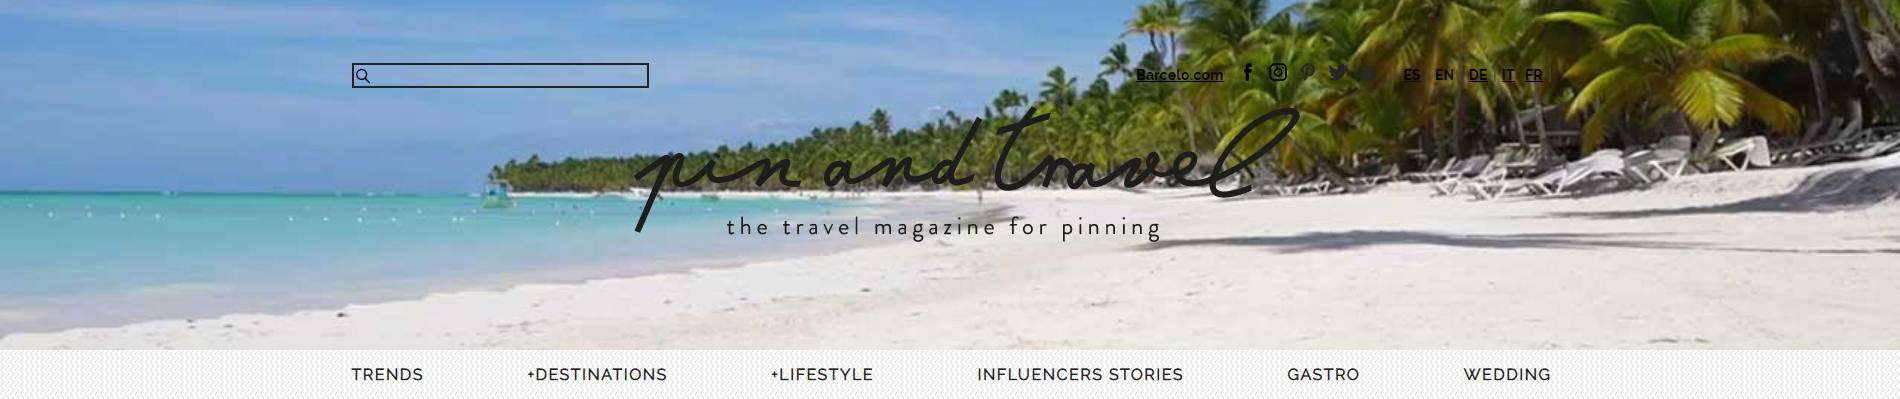 Pin and Travel blog main page